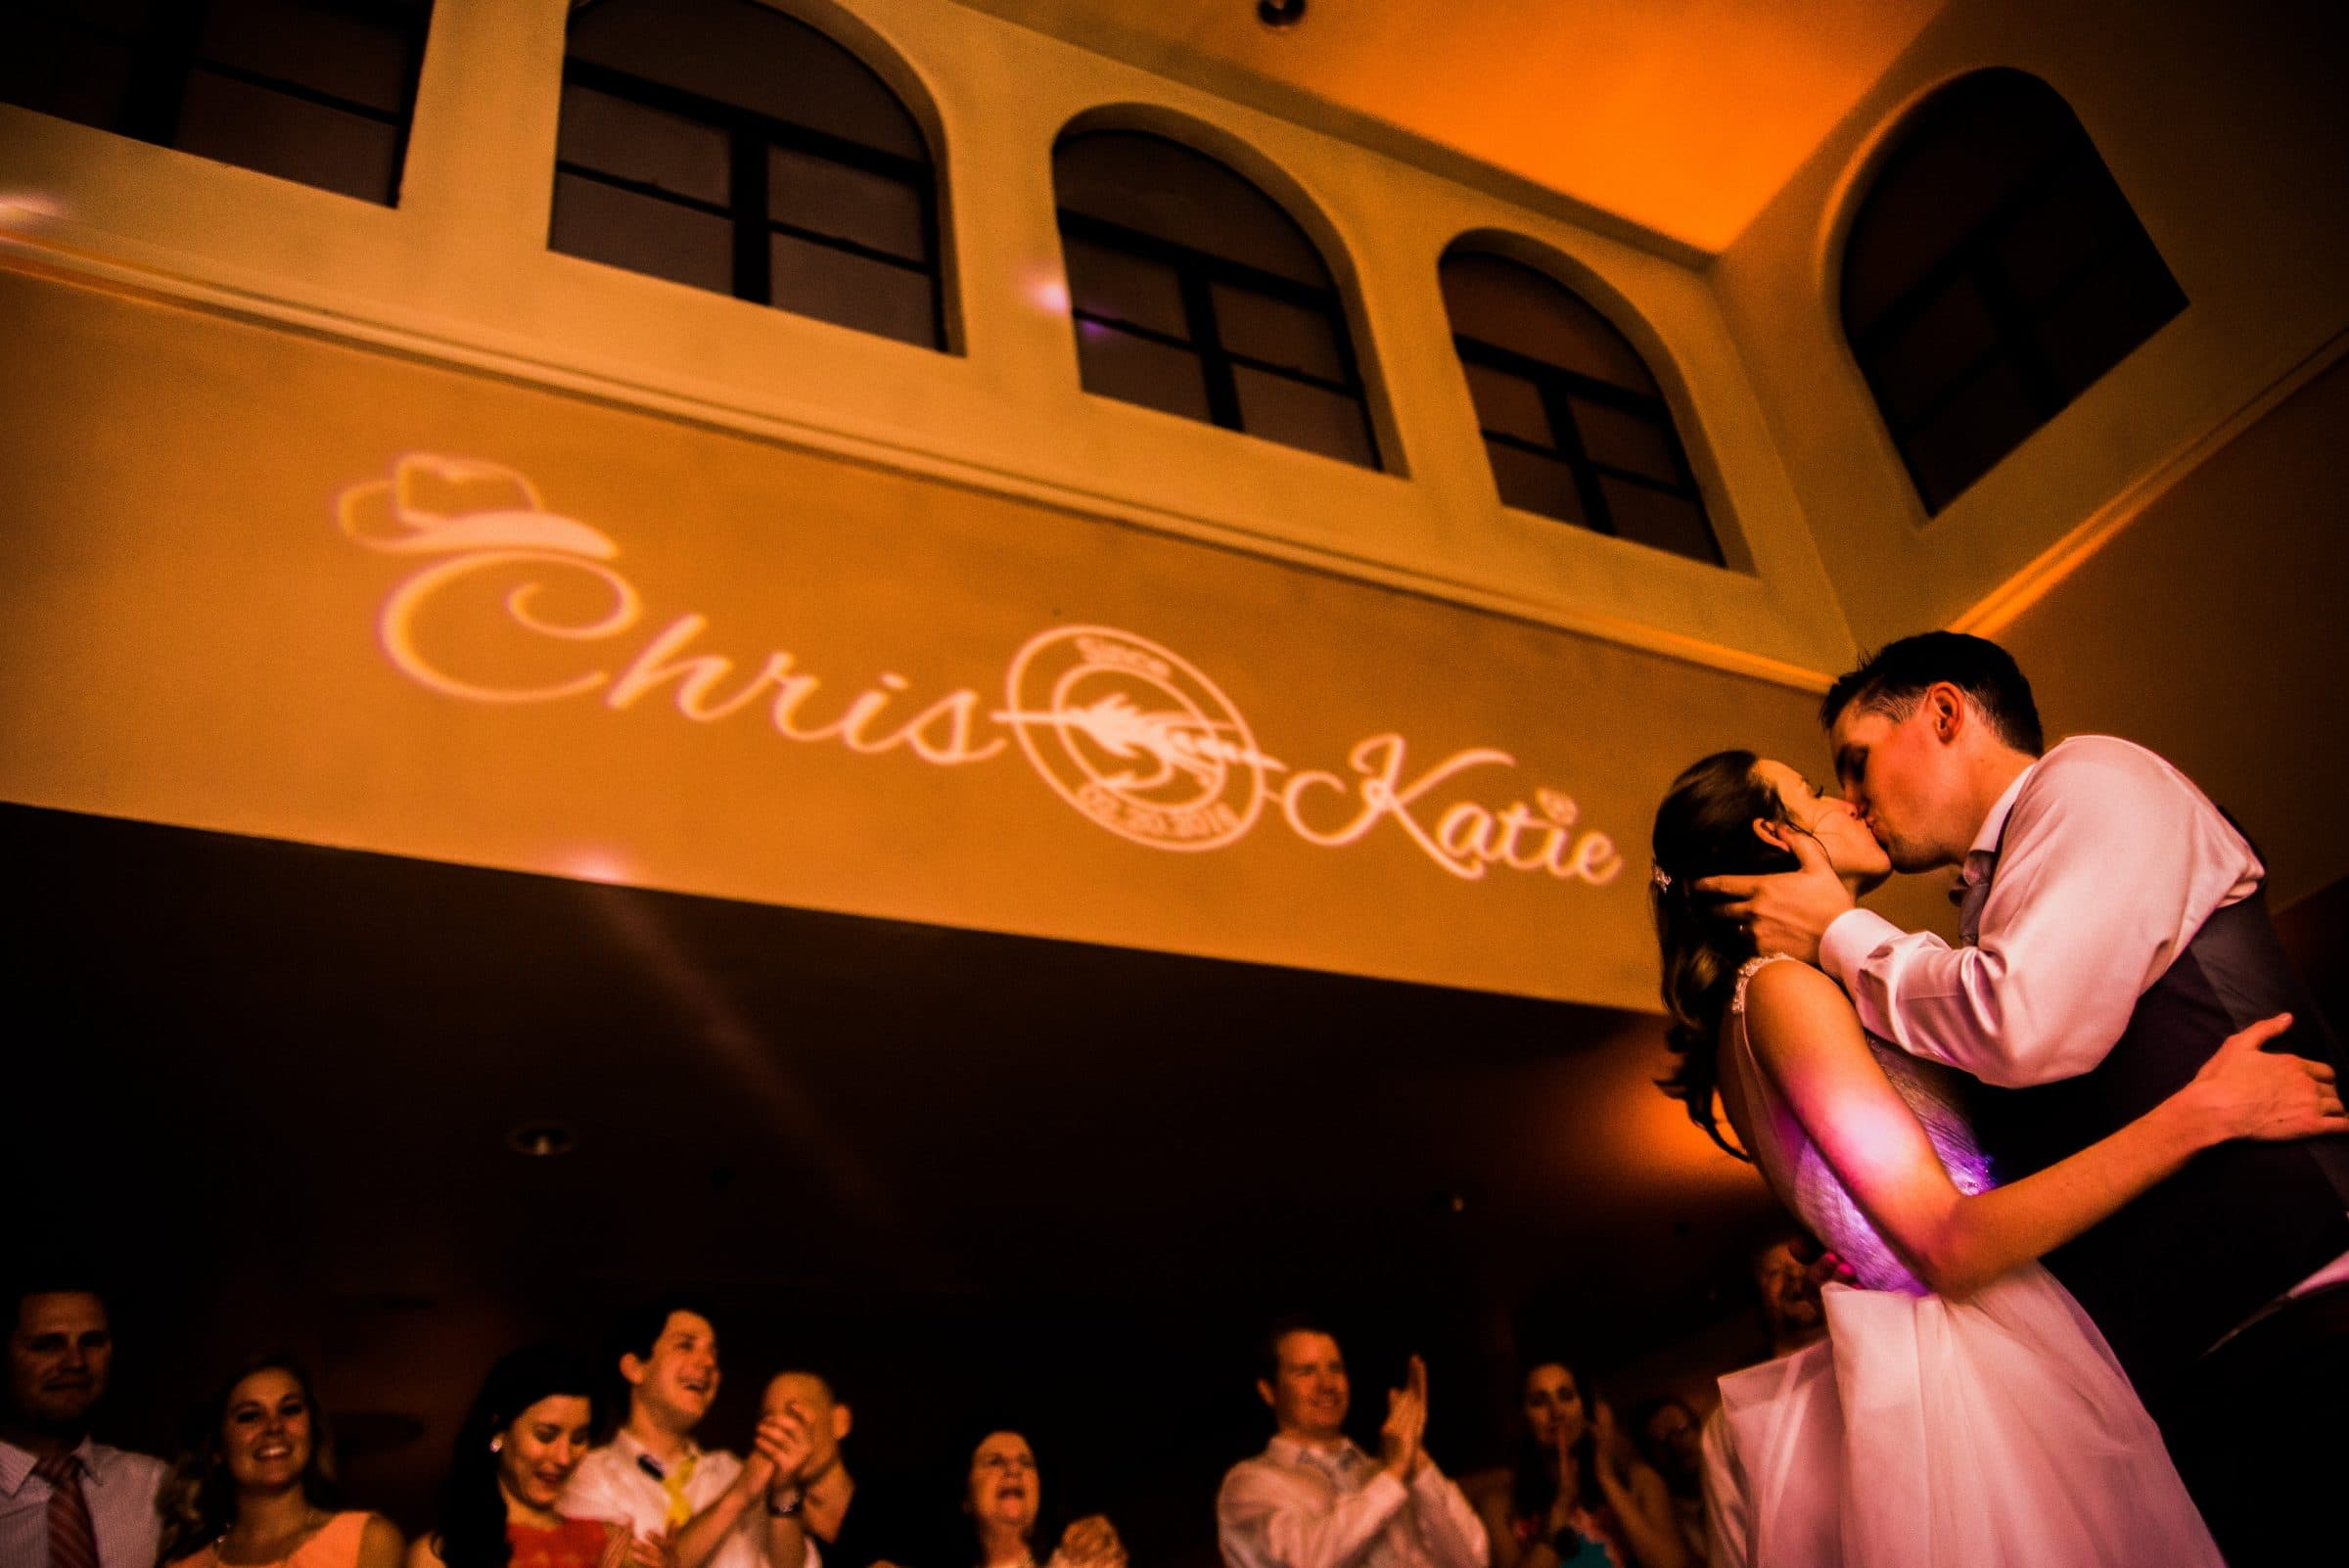 Chris and Katie kiss on dance floor underneath projected monogram of their names